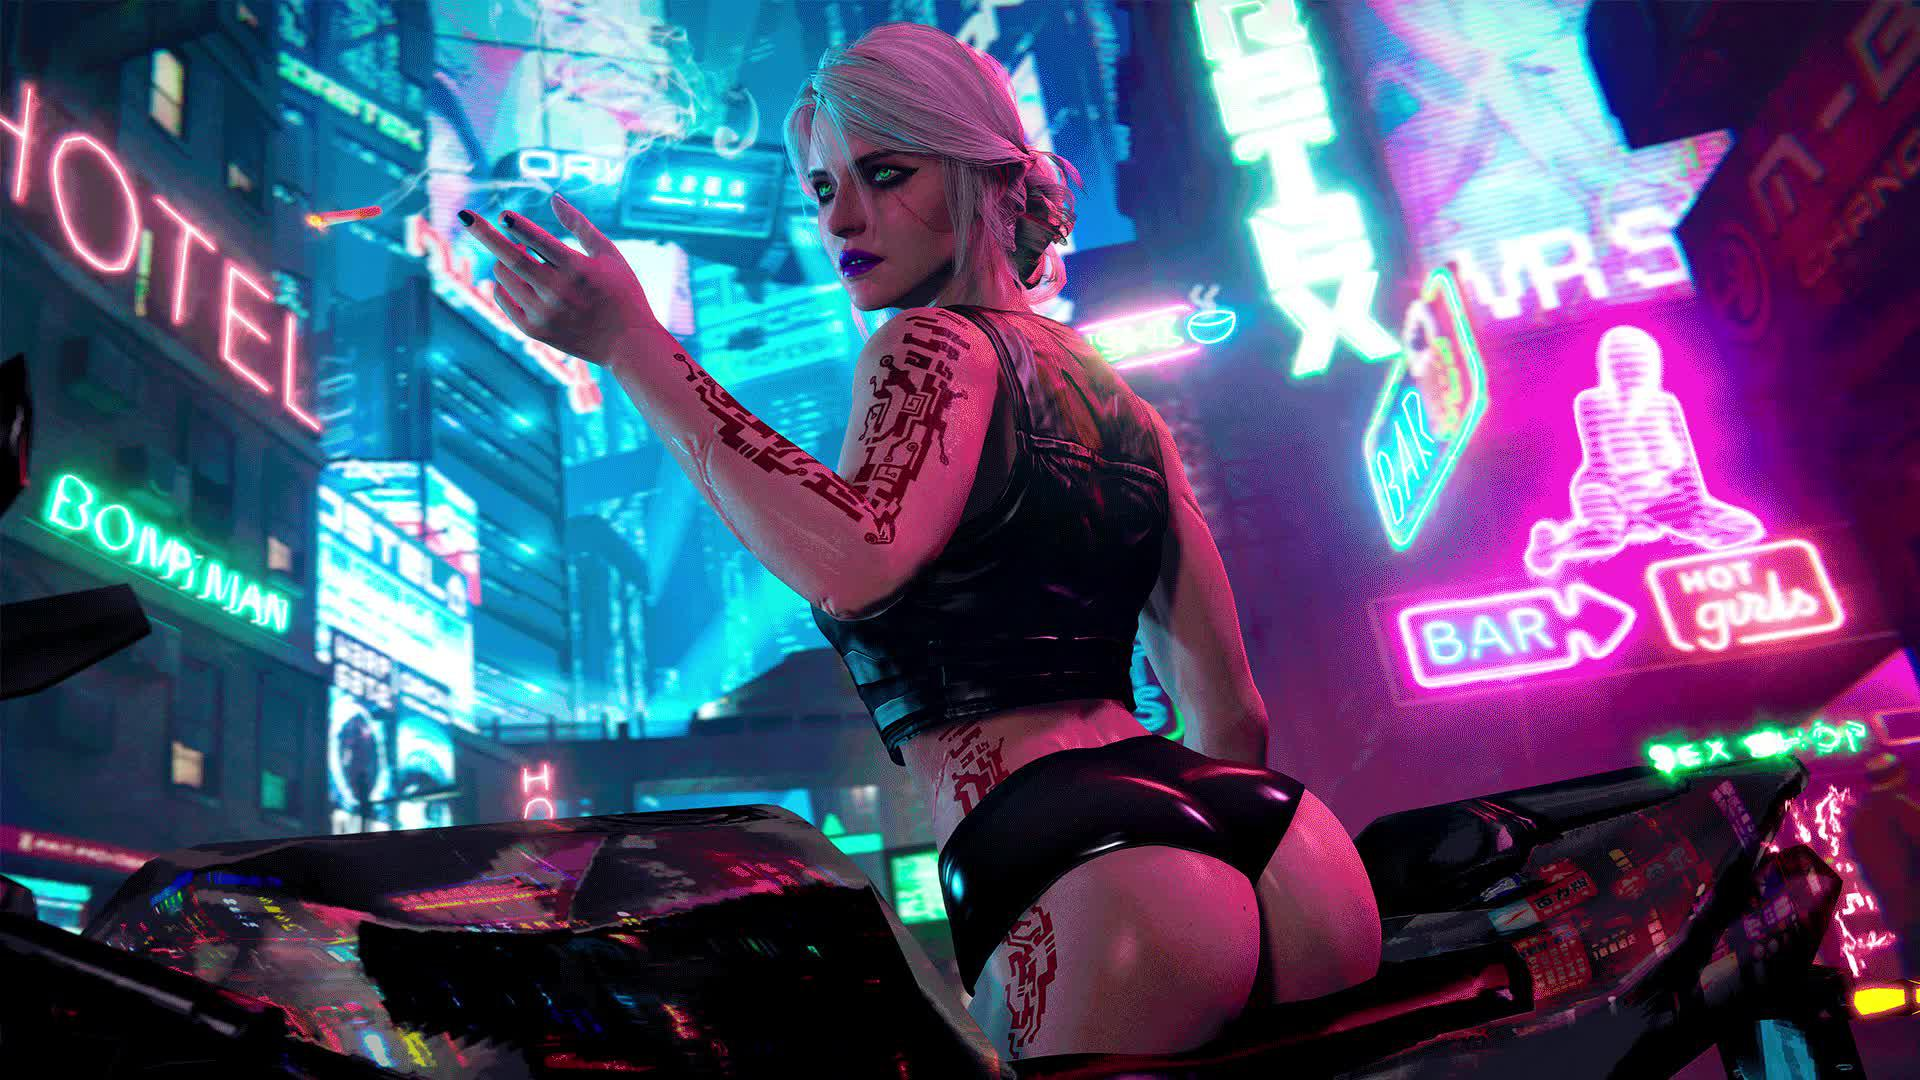 Cyberpunk HD Wallpaper New Tab Themes Free